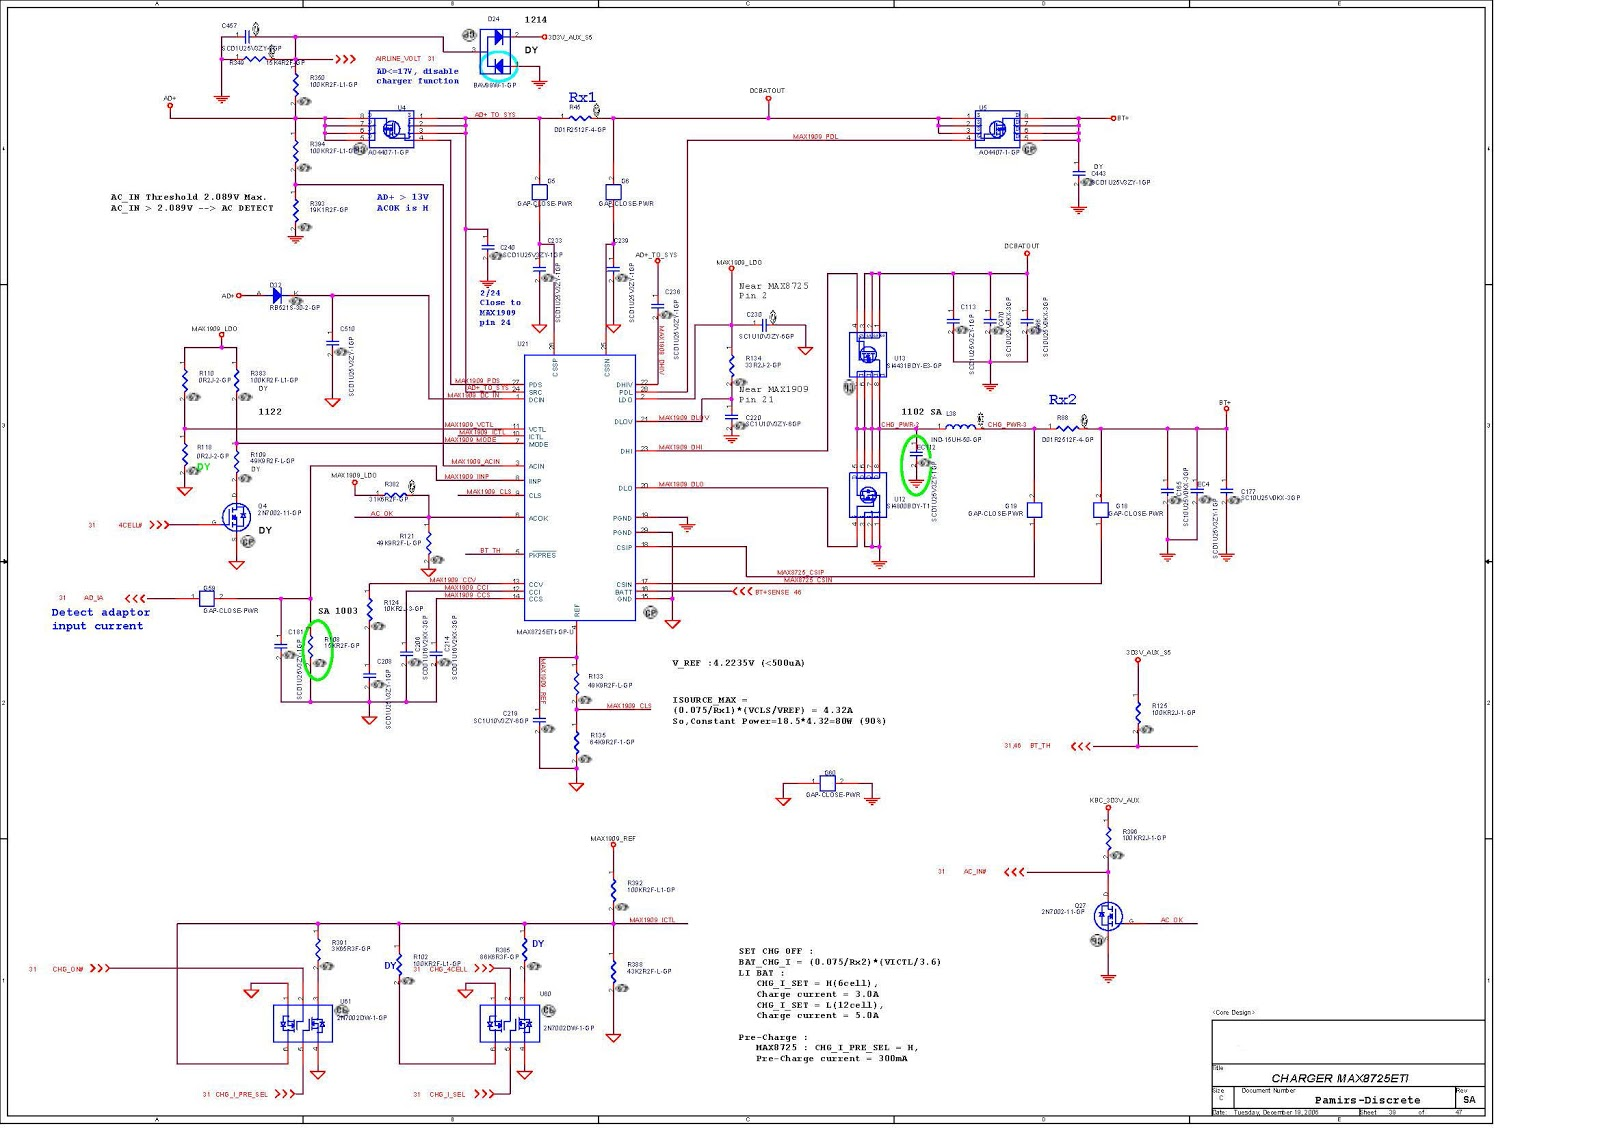 Lenovo Laptop Circuit Diagram Schematic Notebook Bh Keystone Cat6 Jack Wiring Cat 6 Macbook Service Center Calicut Kozhikode Hp Compaq V3000 Rh Laptoplabclt Blogspot Com